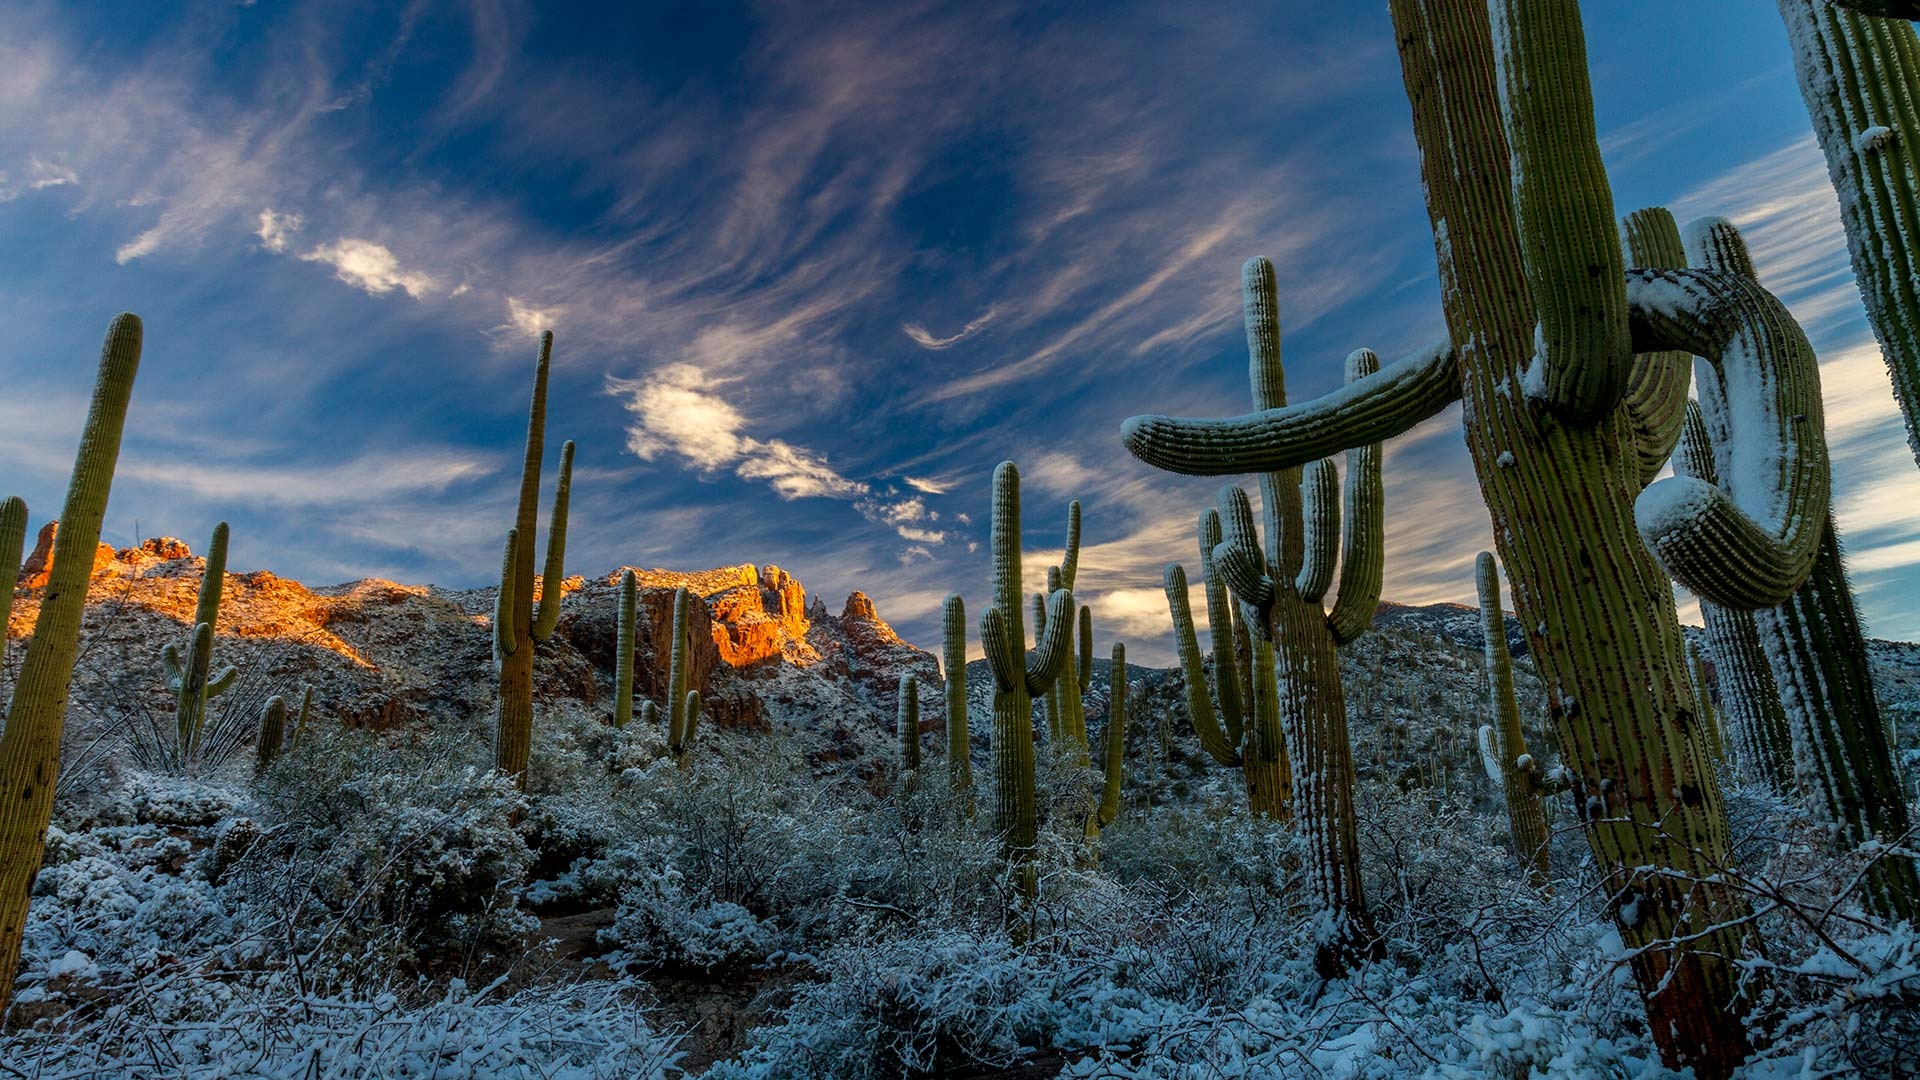 Rare desert winter snow on saguaro cactus in the Catalina Mountains.